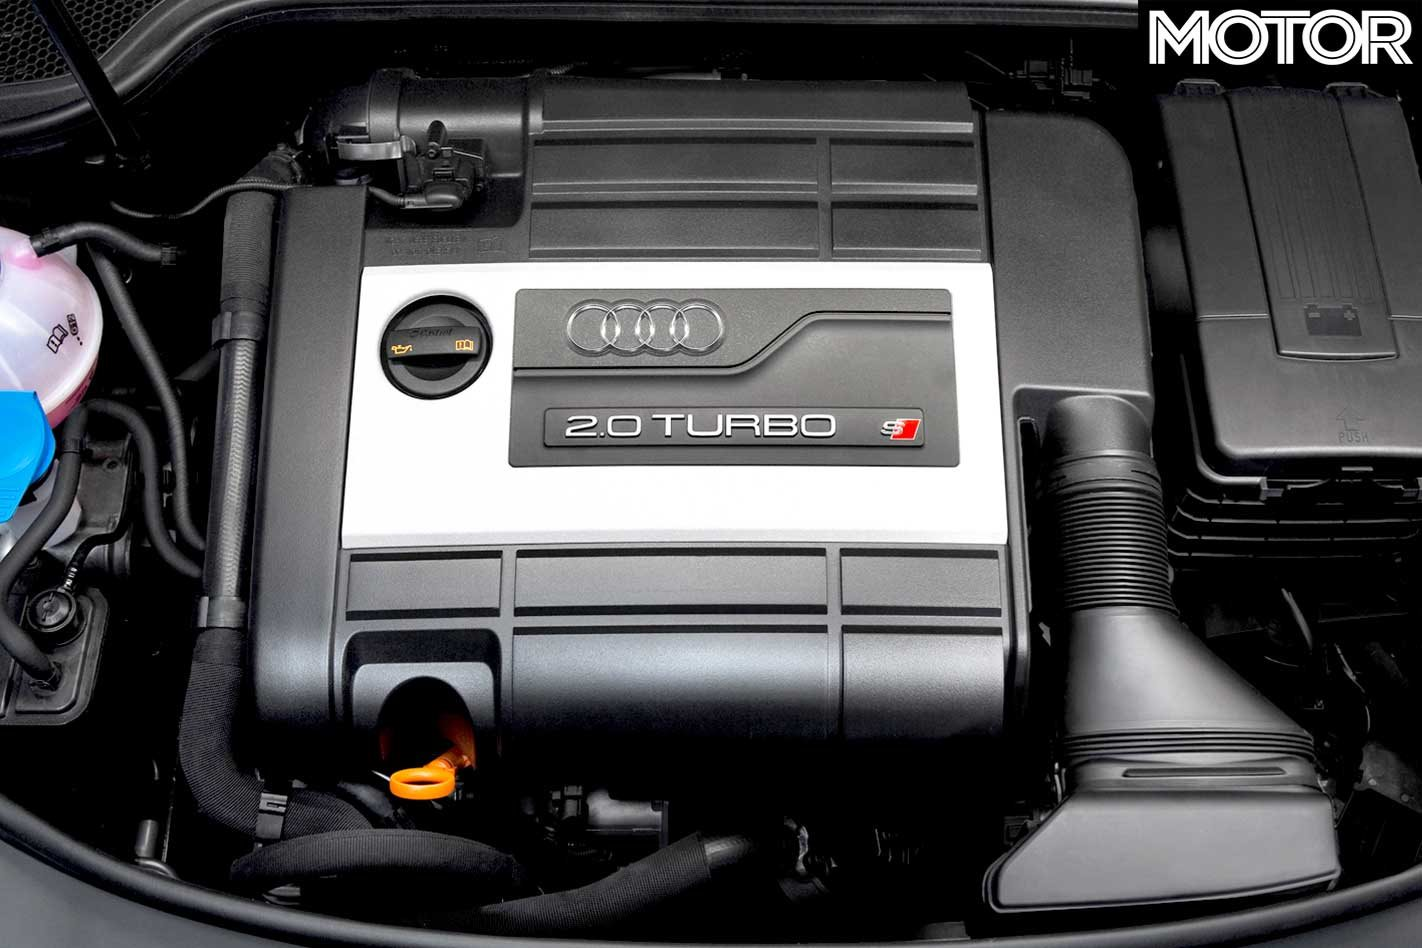 Audi S Review Classic MOTOR - Audi s3 engine